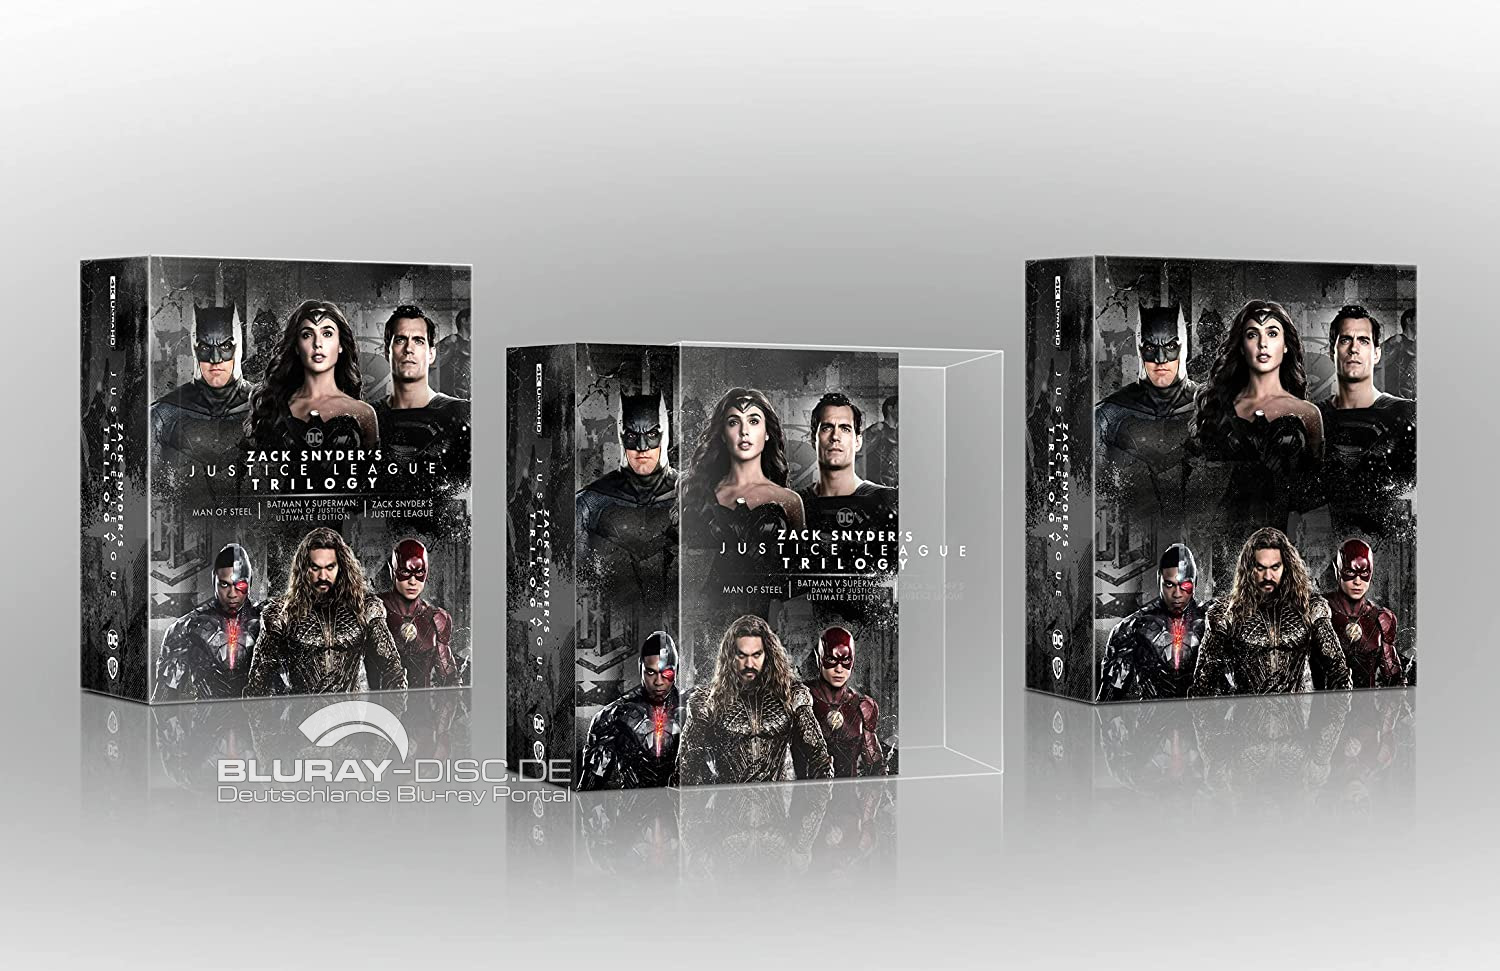 Zack_Snyders_Justice_League_Trilogy_Galerie_02.jpg